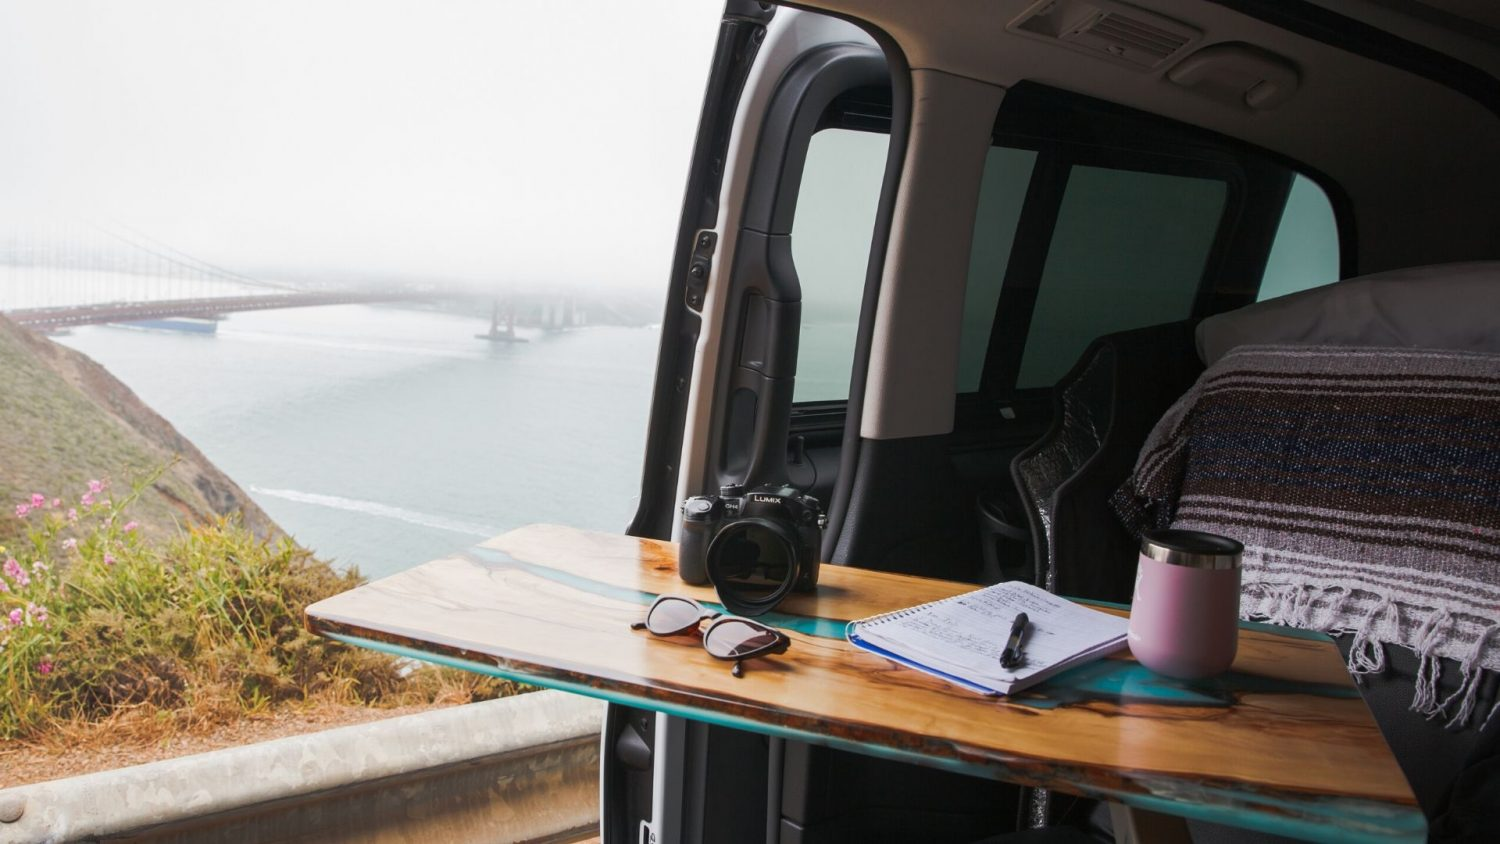 Finding the Right Company for a Camper Van Conversion